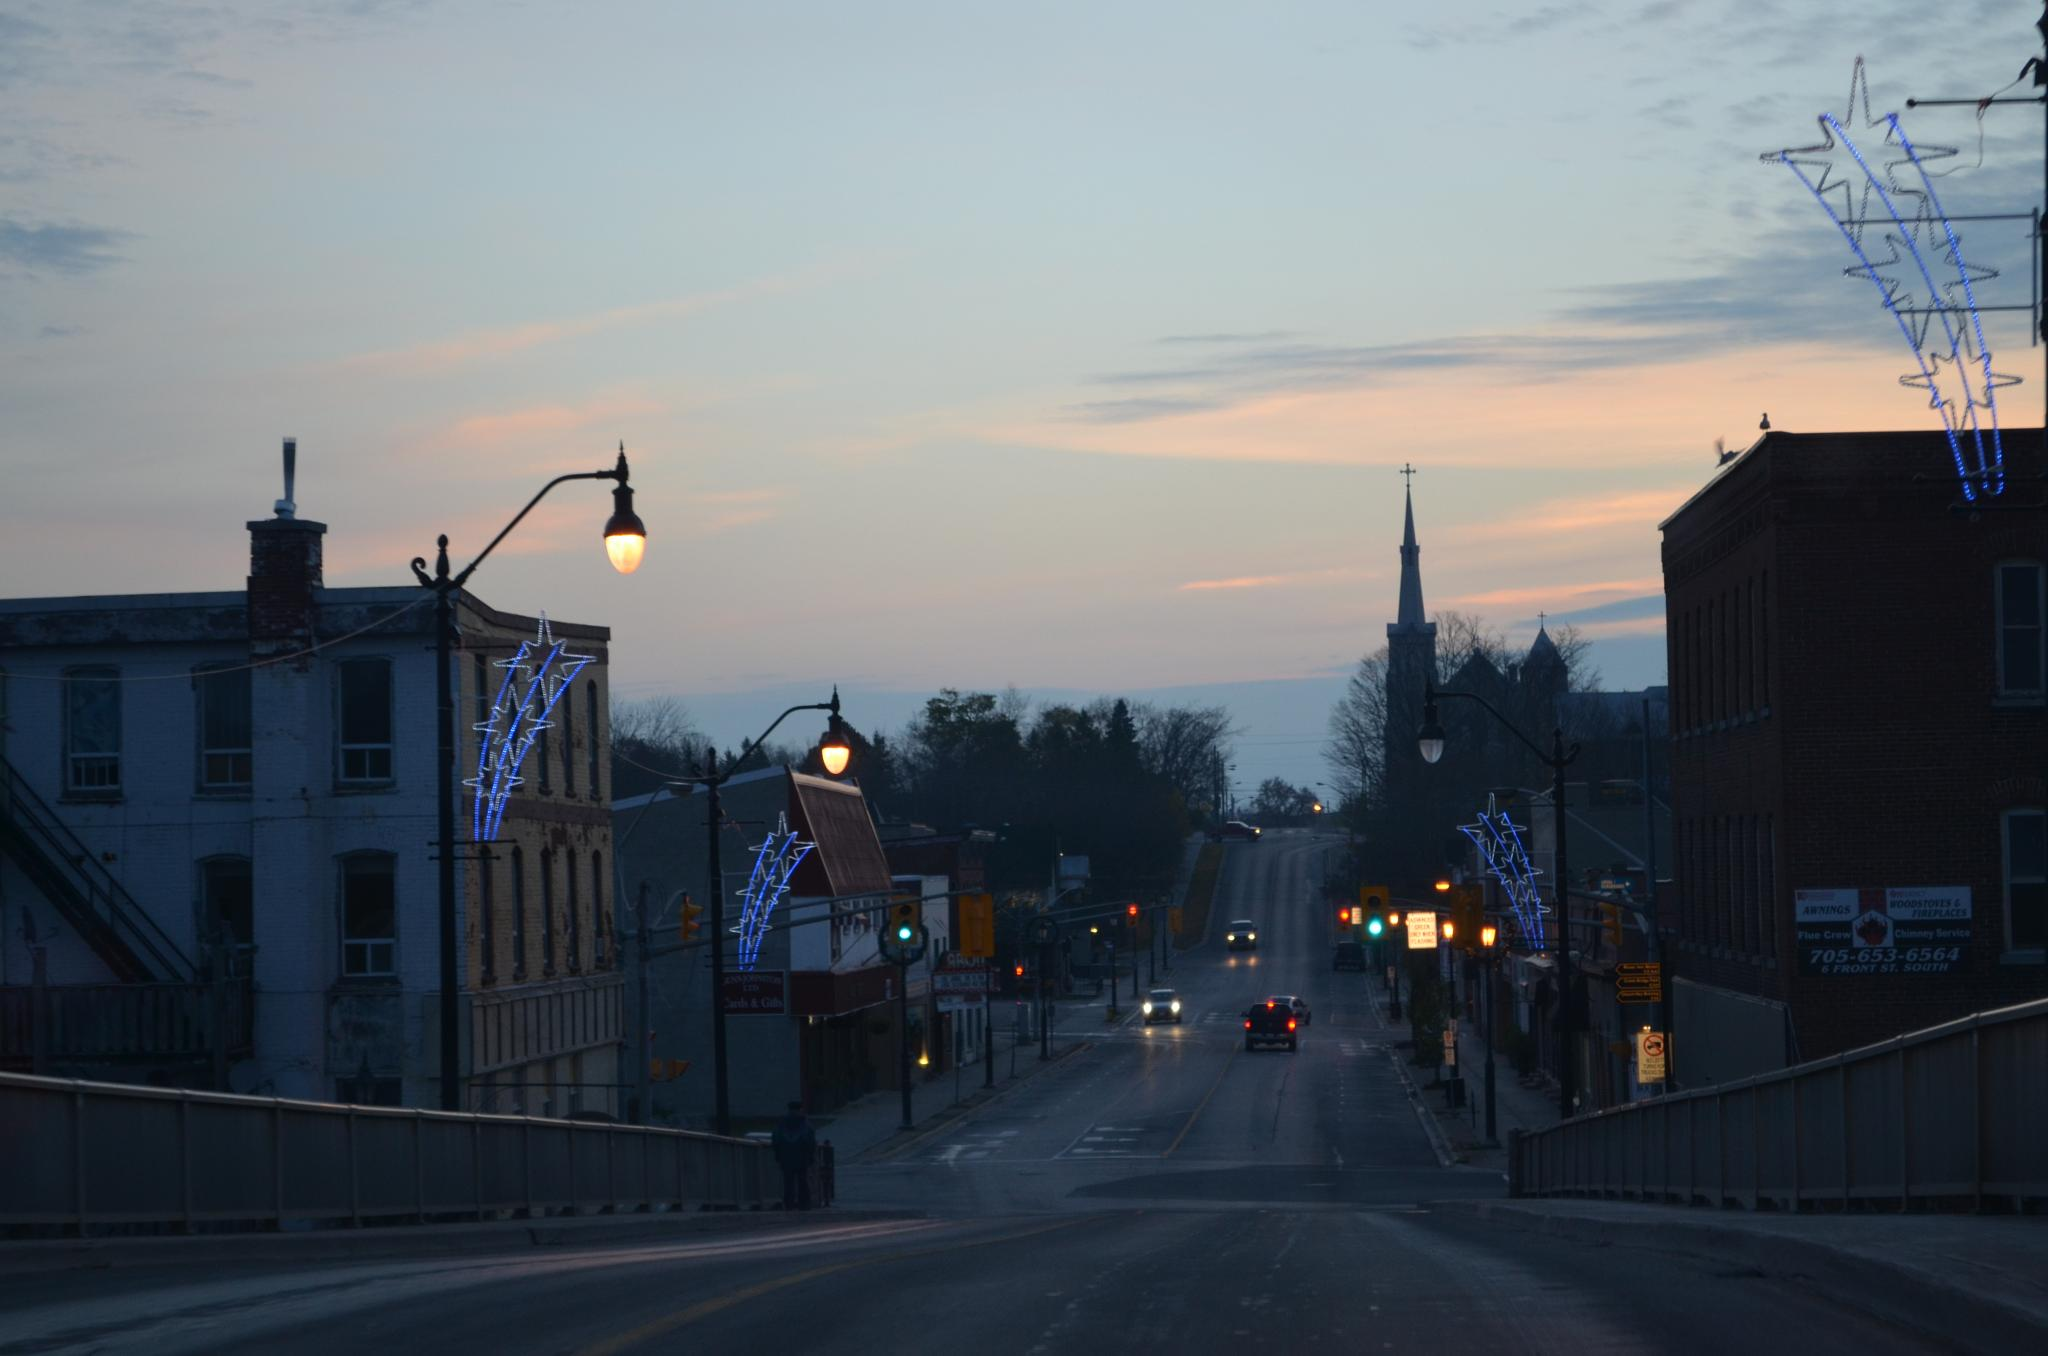 Campbellford by Eva Osterlee